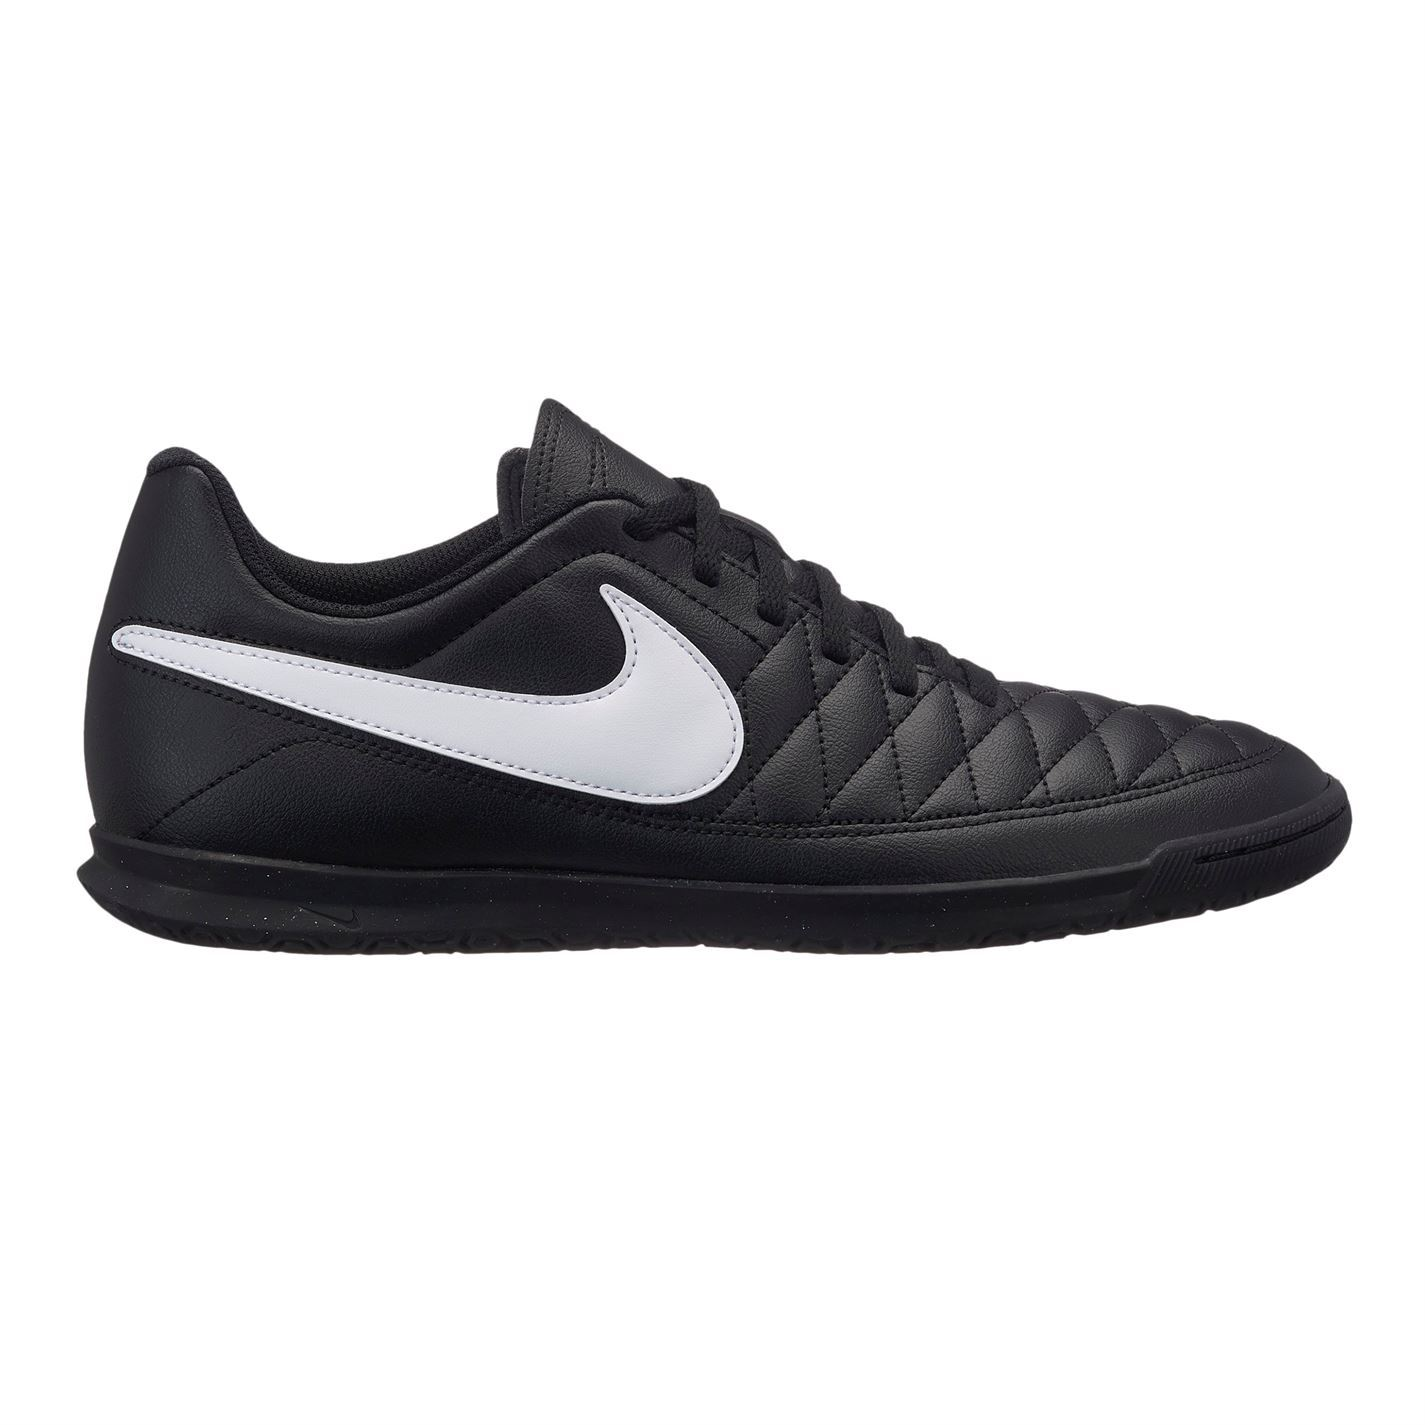 Nike-majestry-Indoor-Football-Baskets-Pour-Homme-Football-Futsal-Chaussures-Baskets-Bottes miniature 16